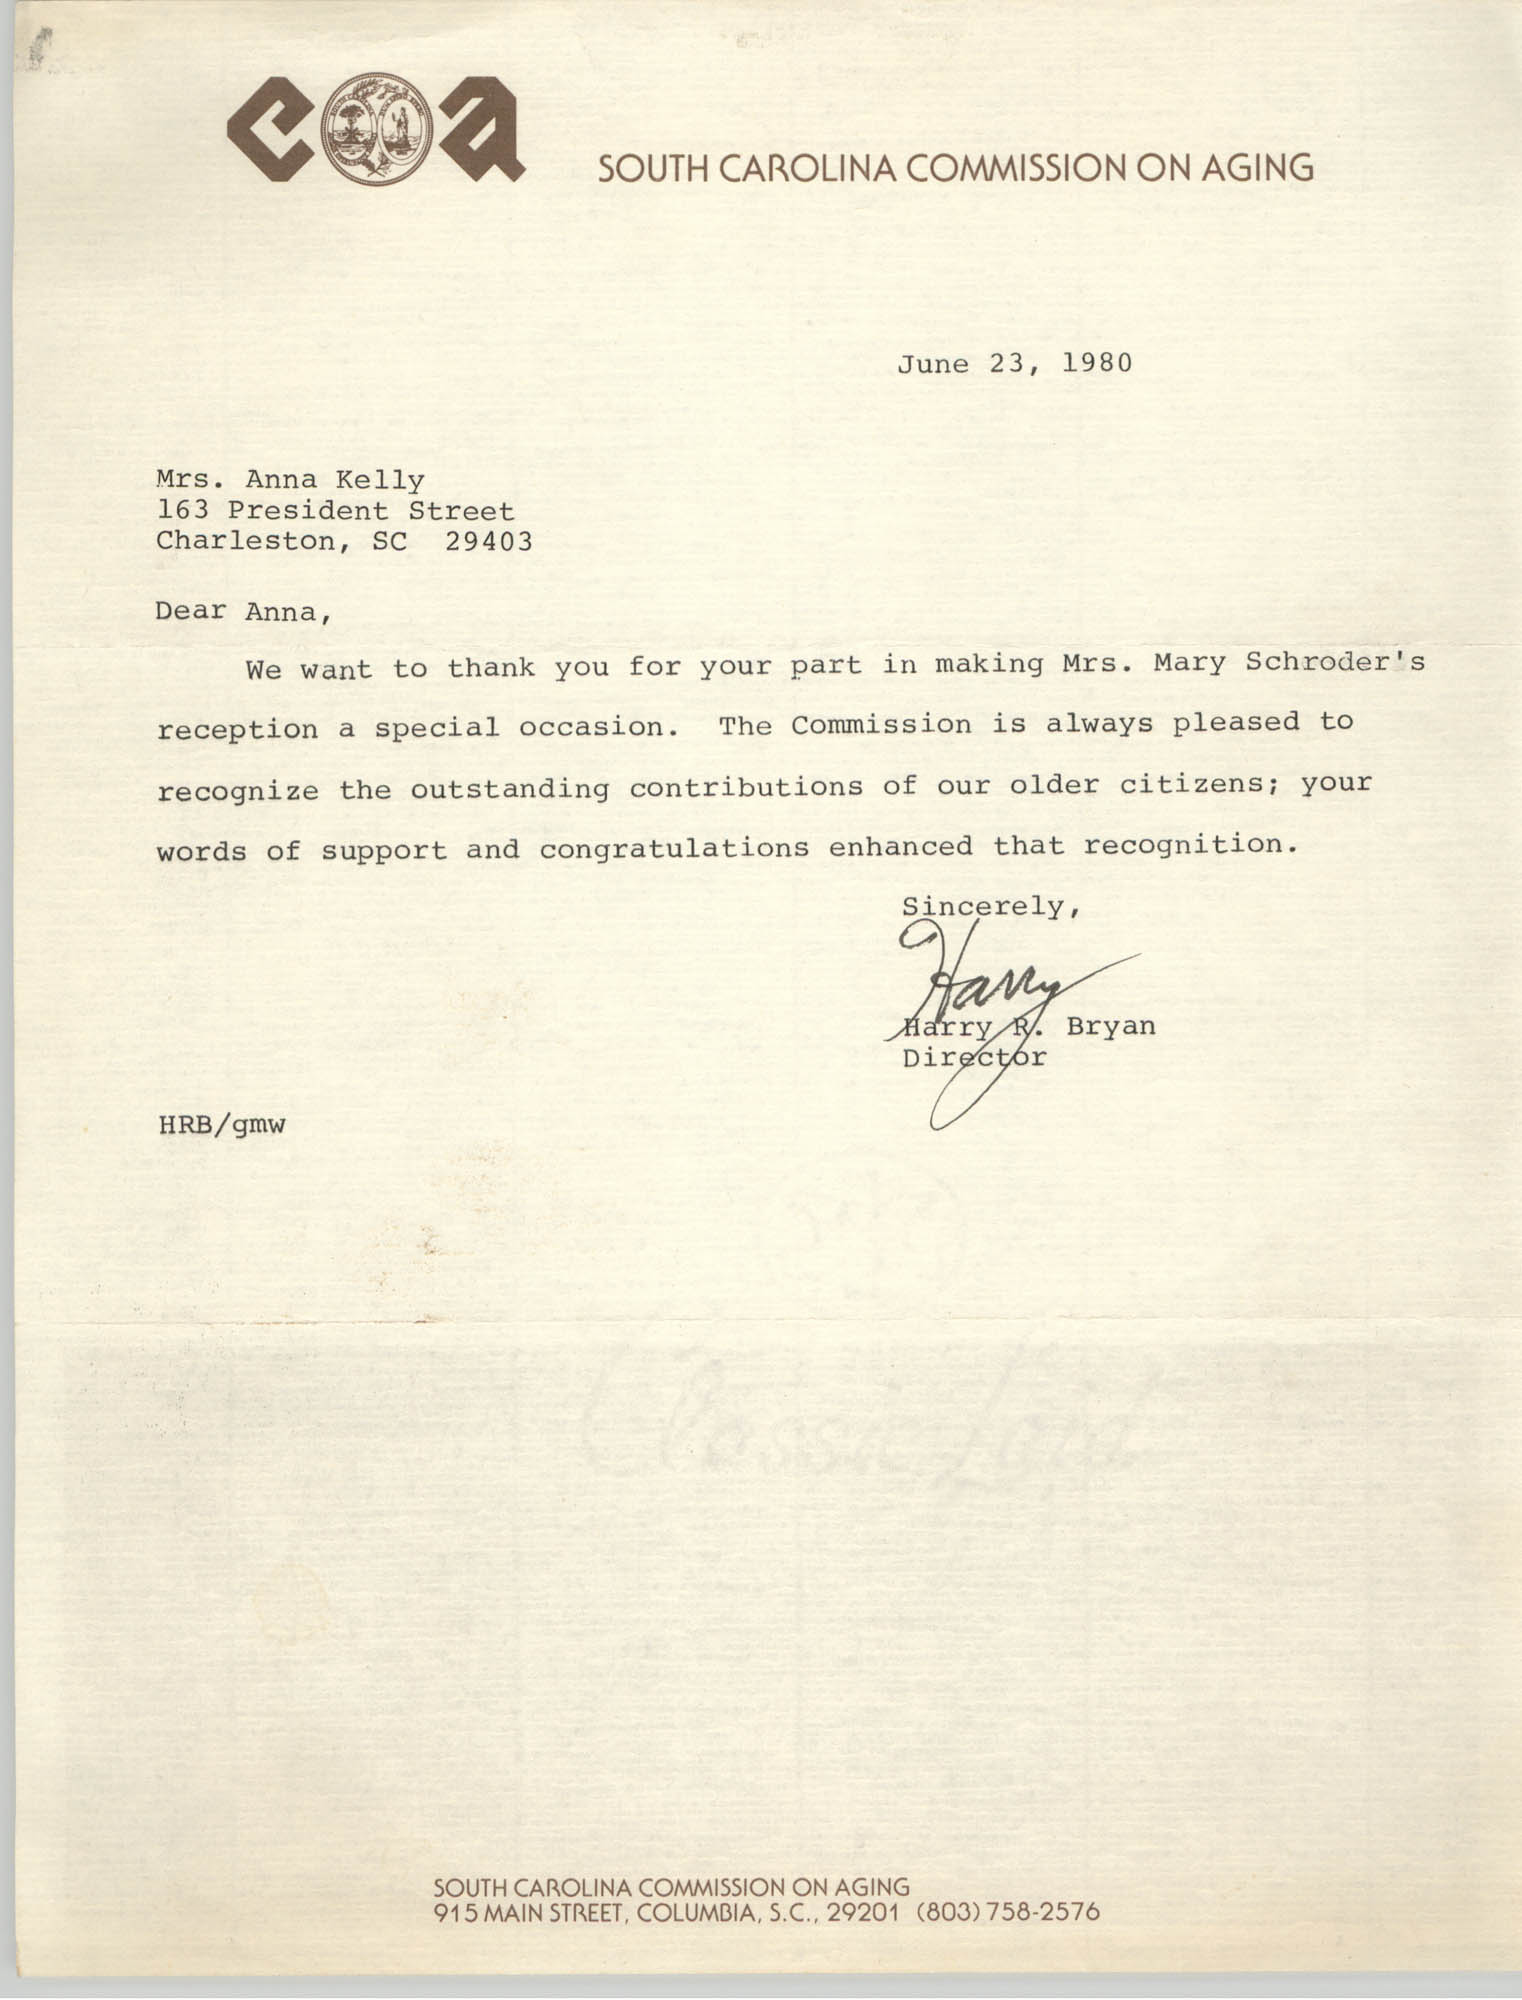 Letter from Harry R. Bryan to Anna D. Kelly, June 23, 1980